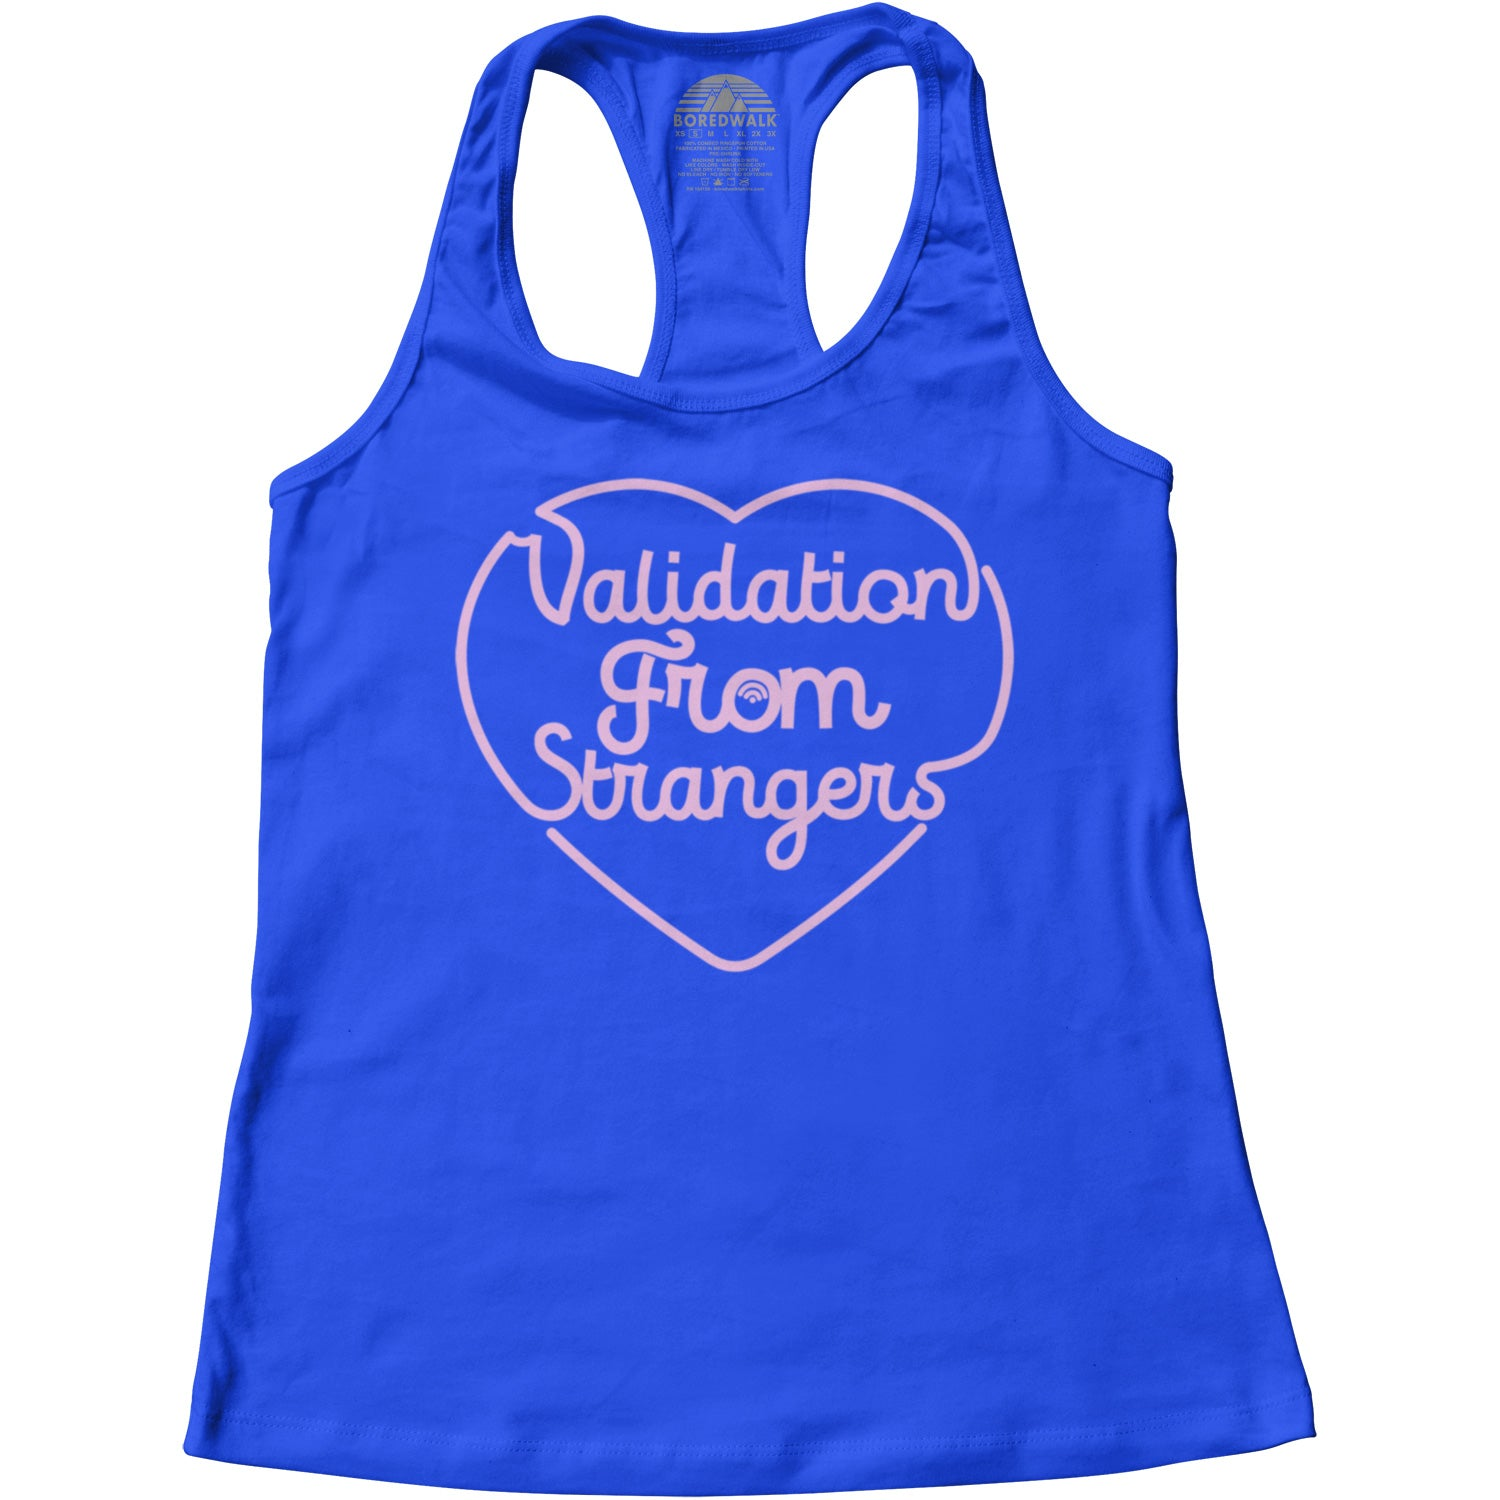 Women's Validation From Strangers Racerback Tank Top